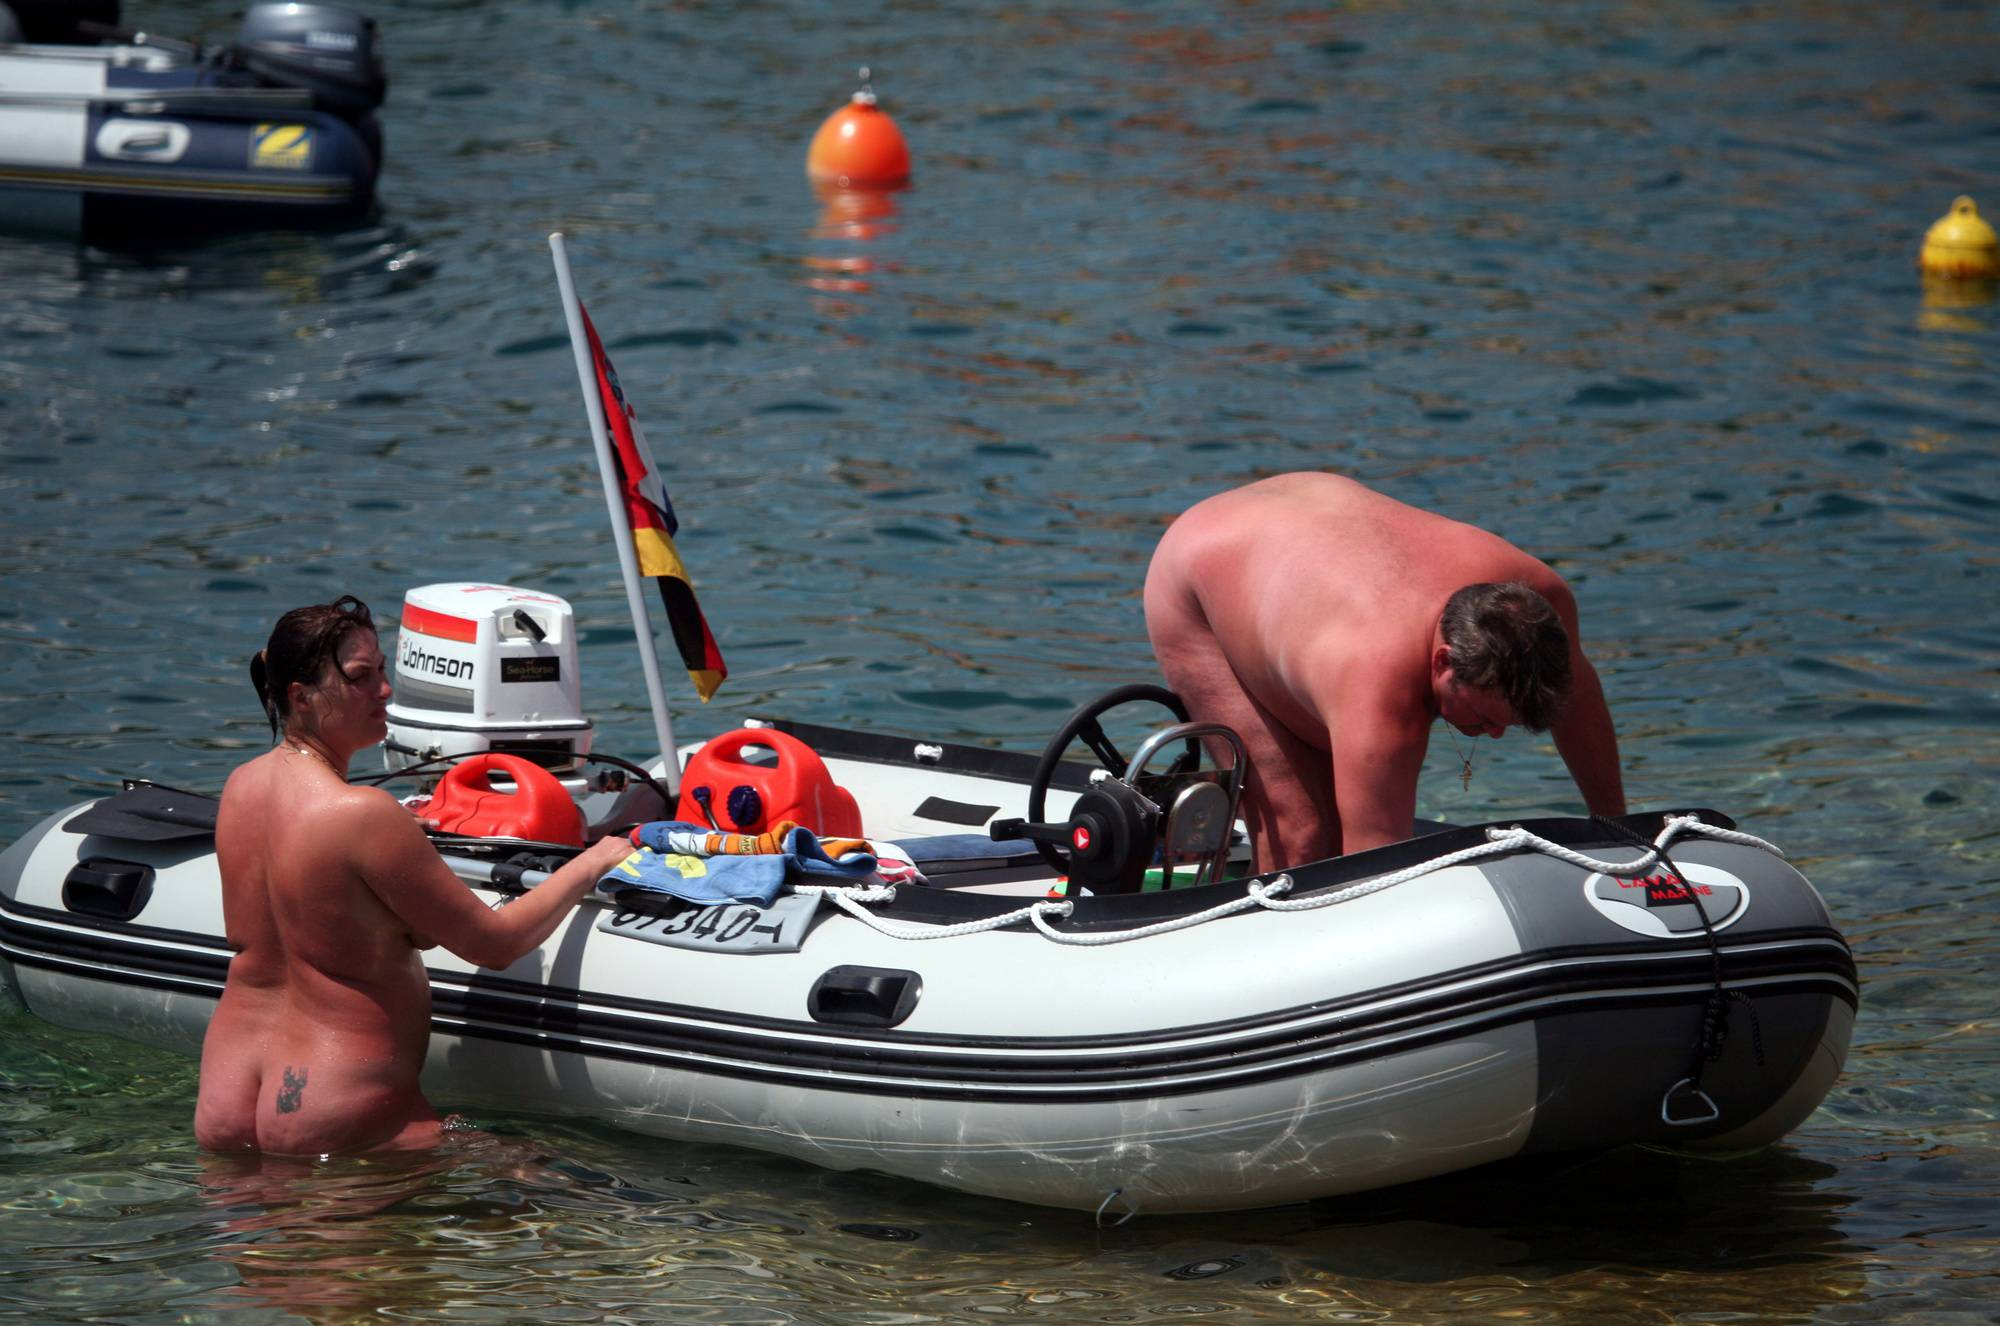 Pure Nudism Photos Boating and Floater Waters - 1